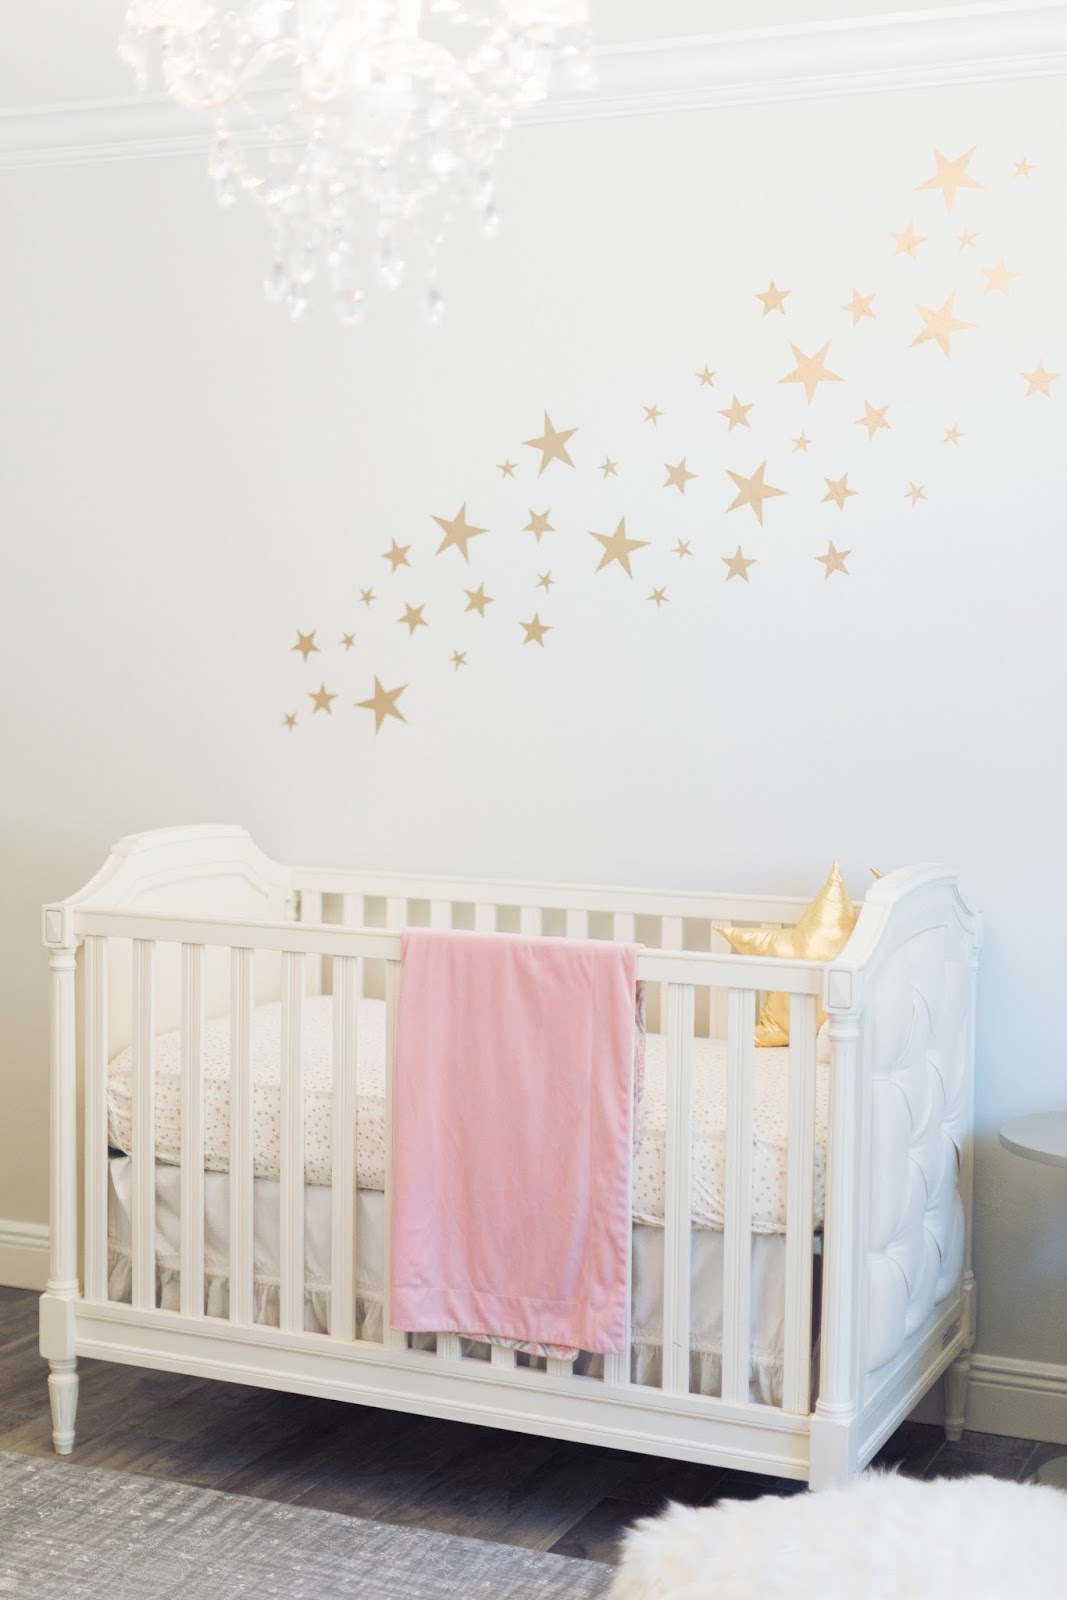 Baby Girl Nursery ideas from popular Florida blogger, The Celenration Stylist